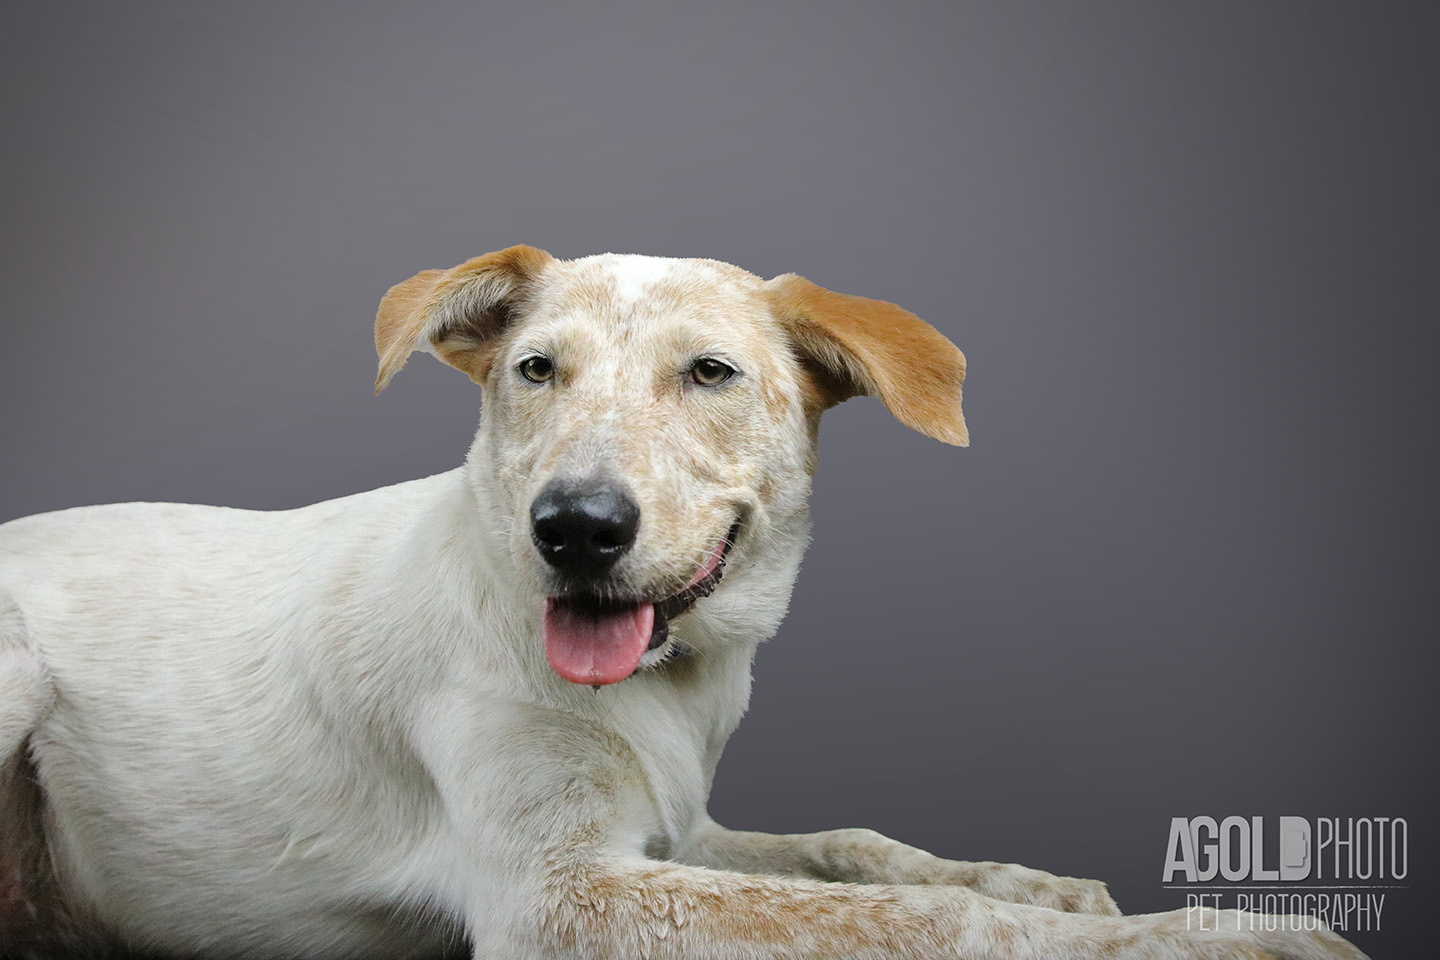 riley_agoldphoto-tampa-pet-photography__agoldphoto-tampa-pet-photography_